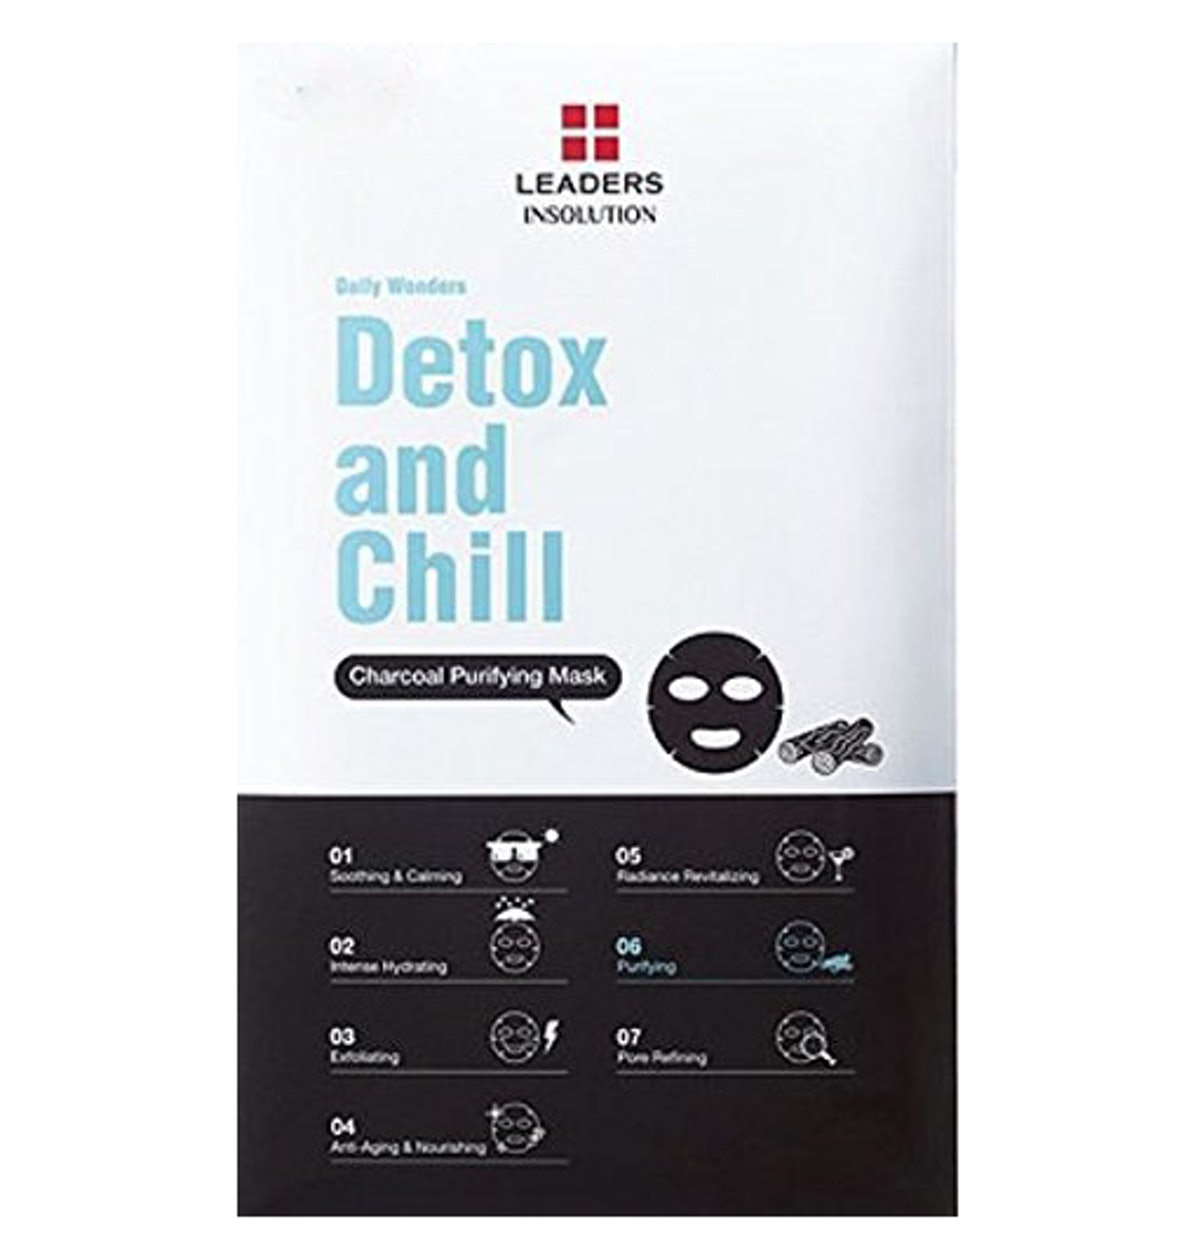 Leaders Daily Wonders Detox & Chill Mask